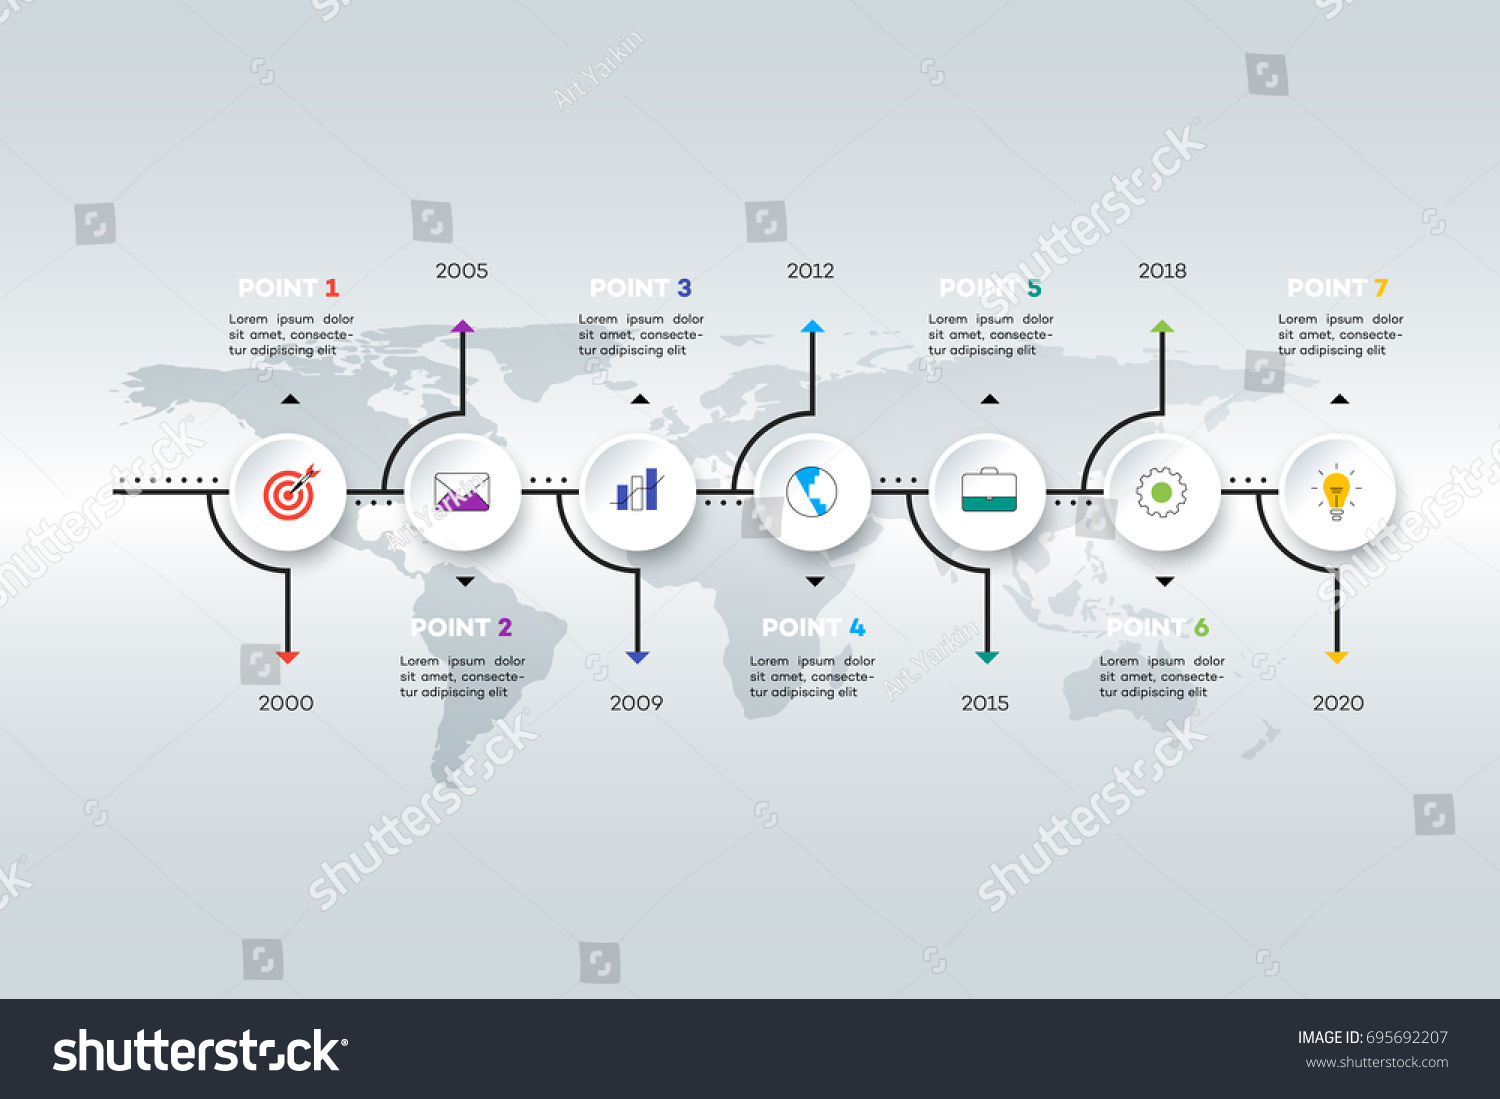 Layered Horizontal Infographic Timeline Vector Template